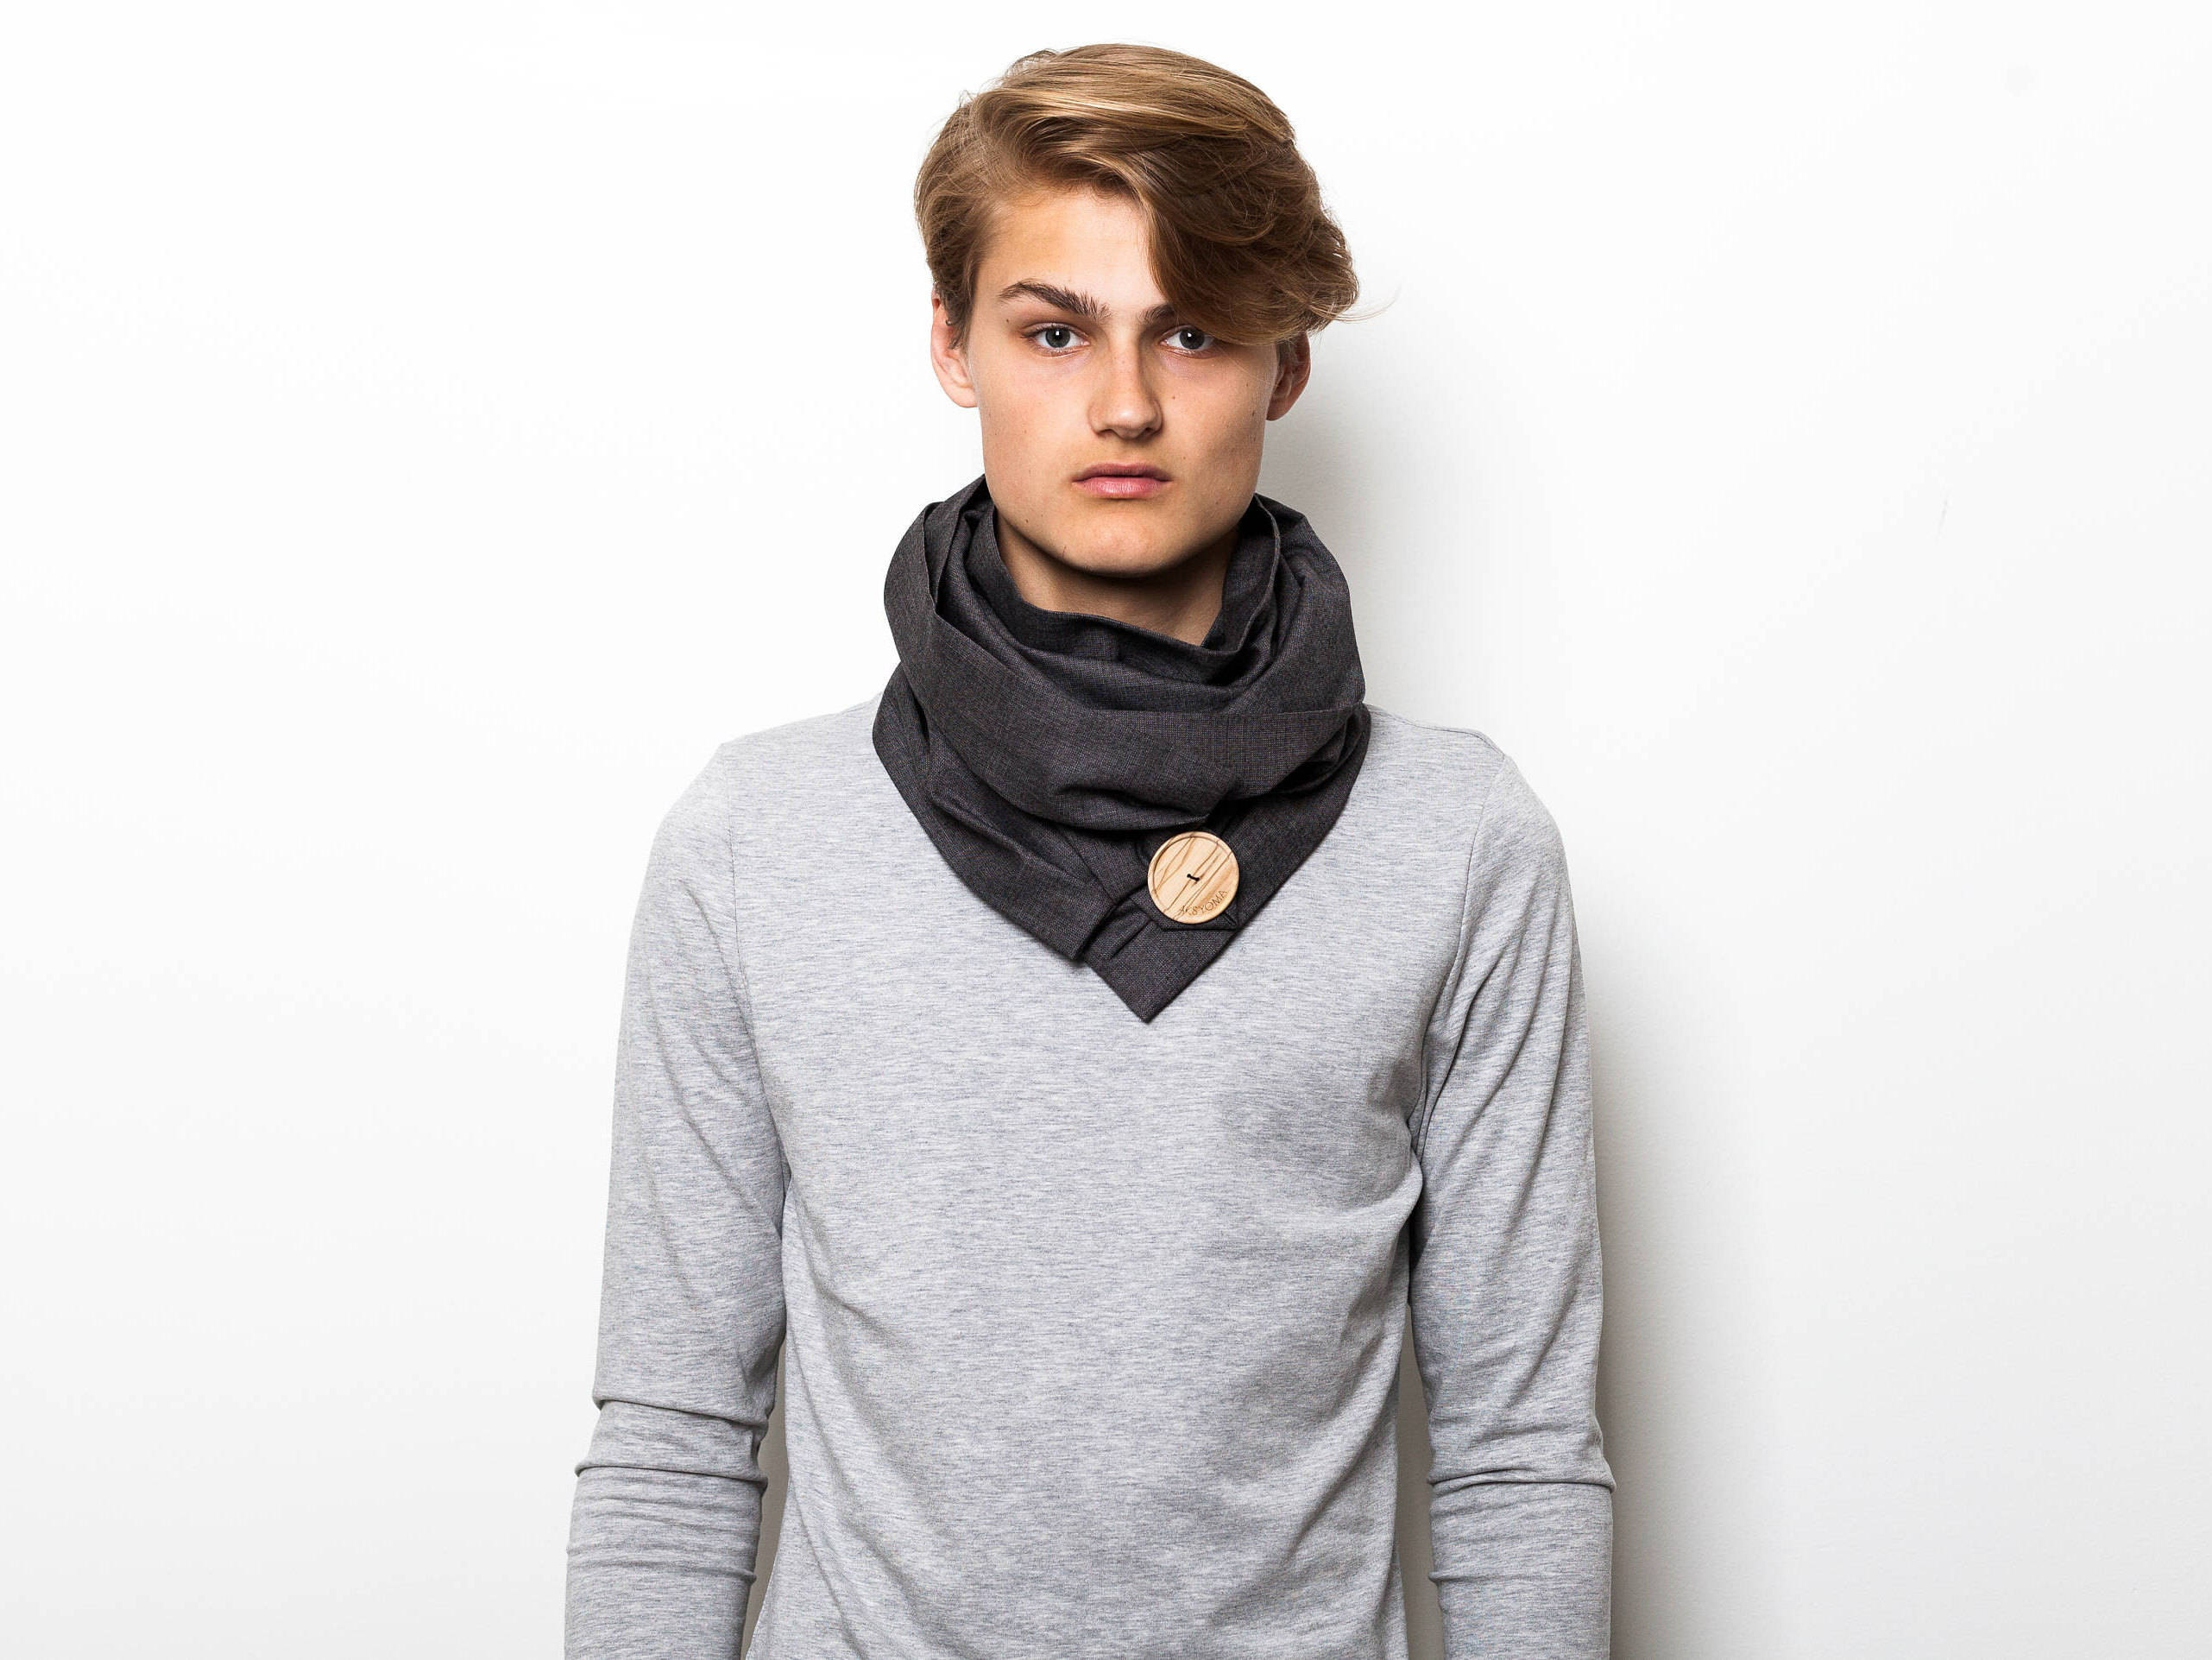 loop infinity blue scarves gift scarf cotton fullxfull il for men dad navy listing accessories shawl mens him